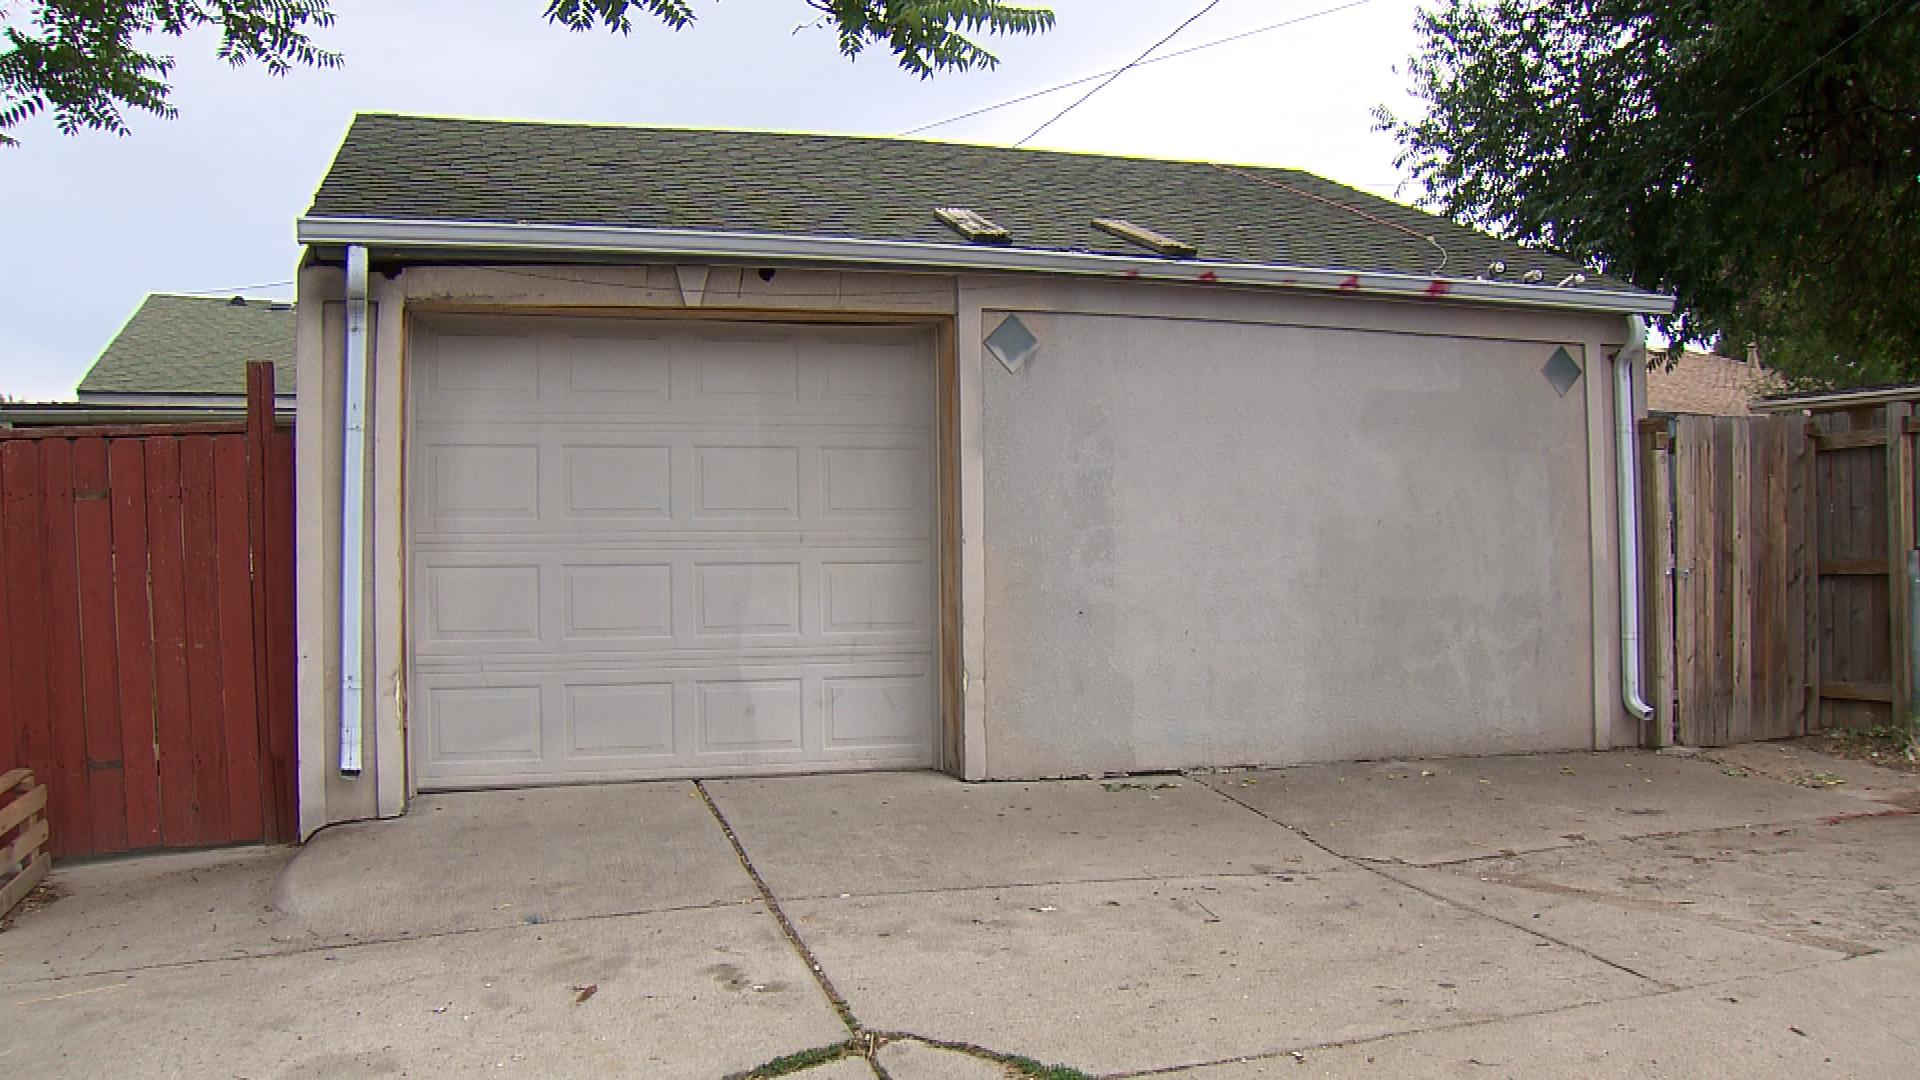 The garage where the alleged assaults occurred (credit: CBS)